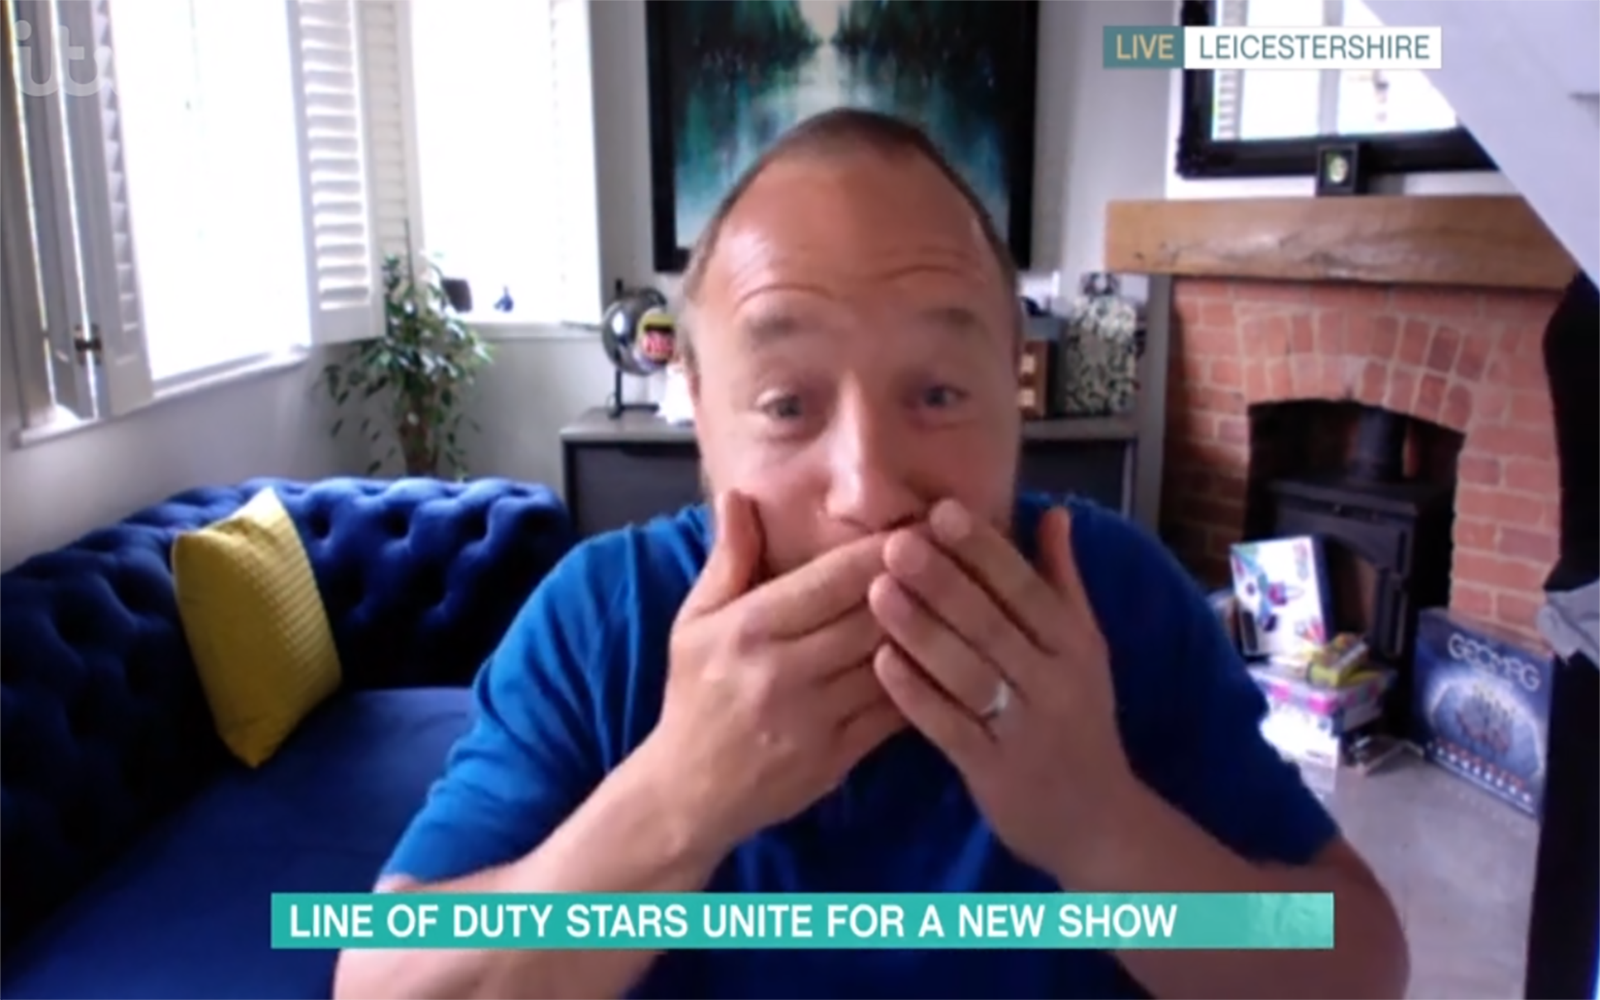 Line of Duty favourite Stephen Graham looks appalled after he swears on This Morning